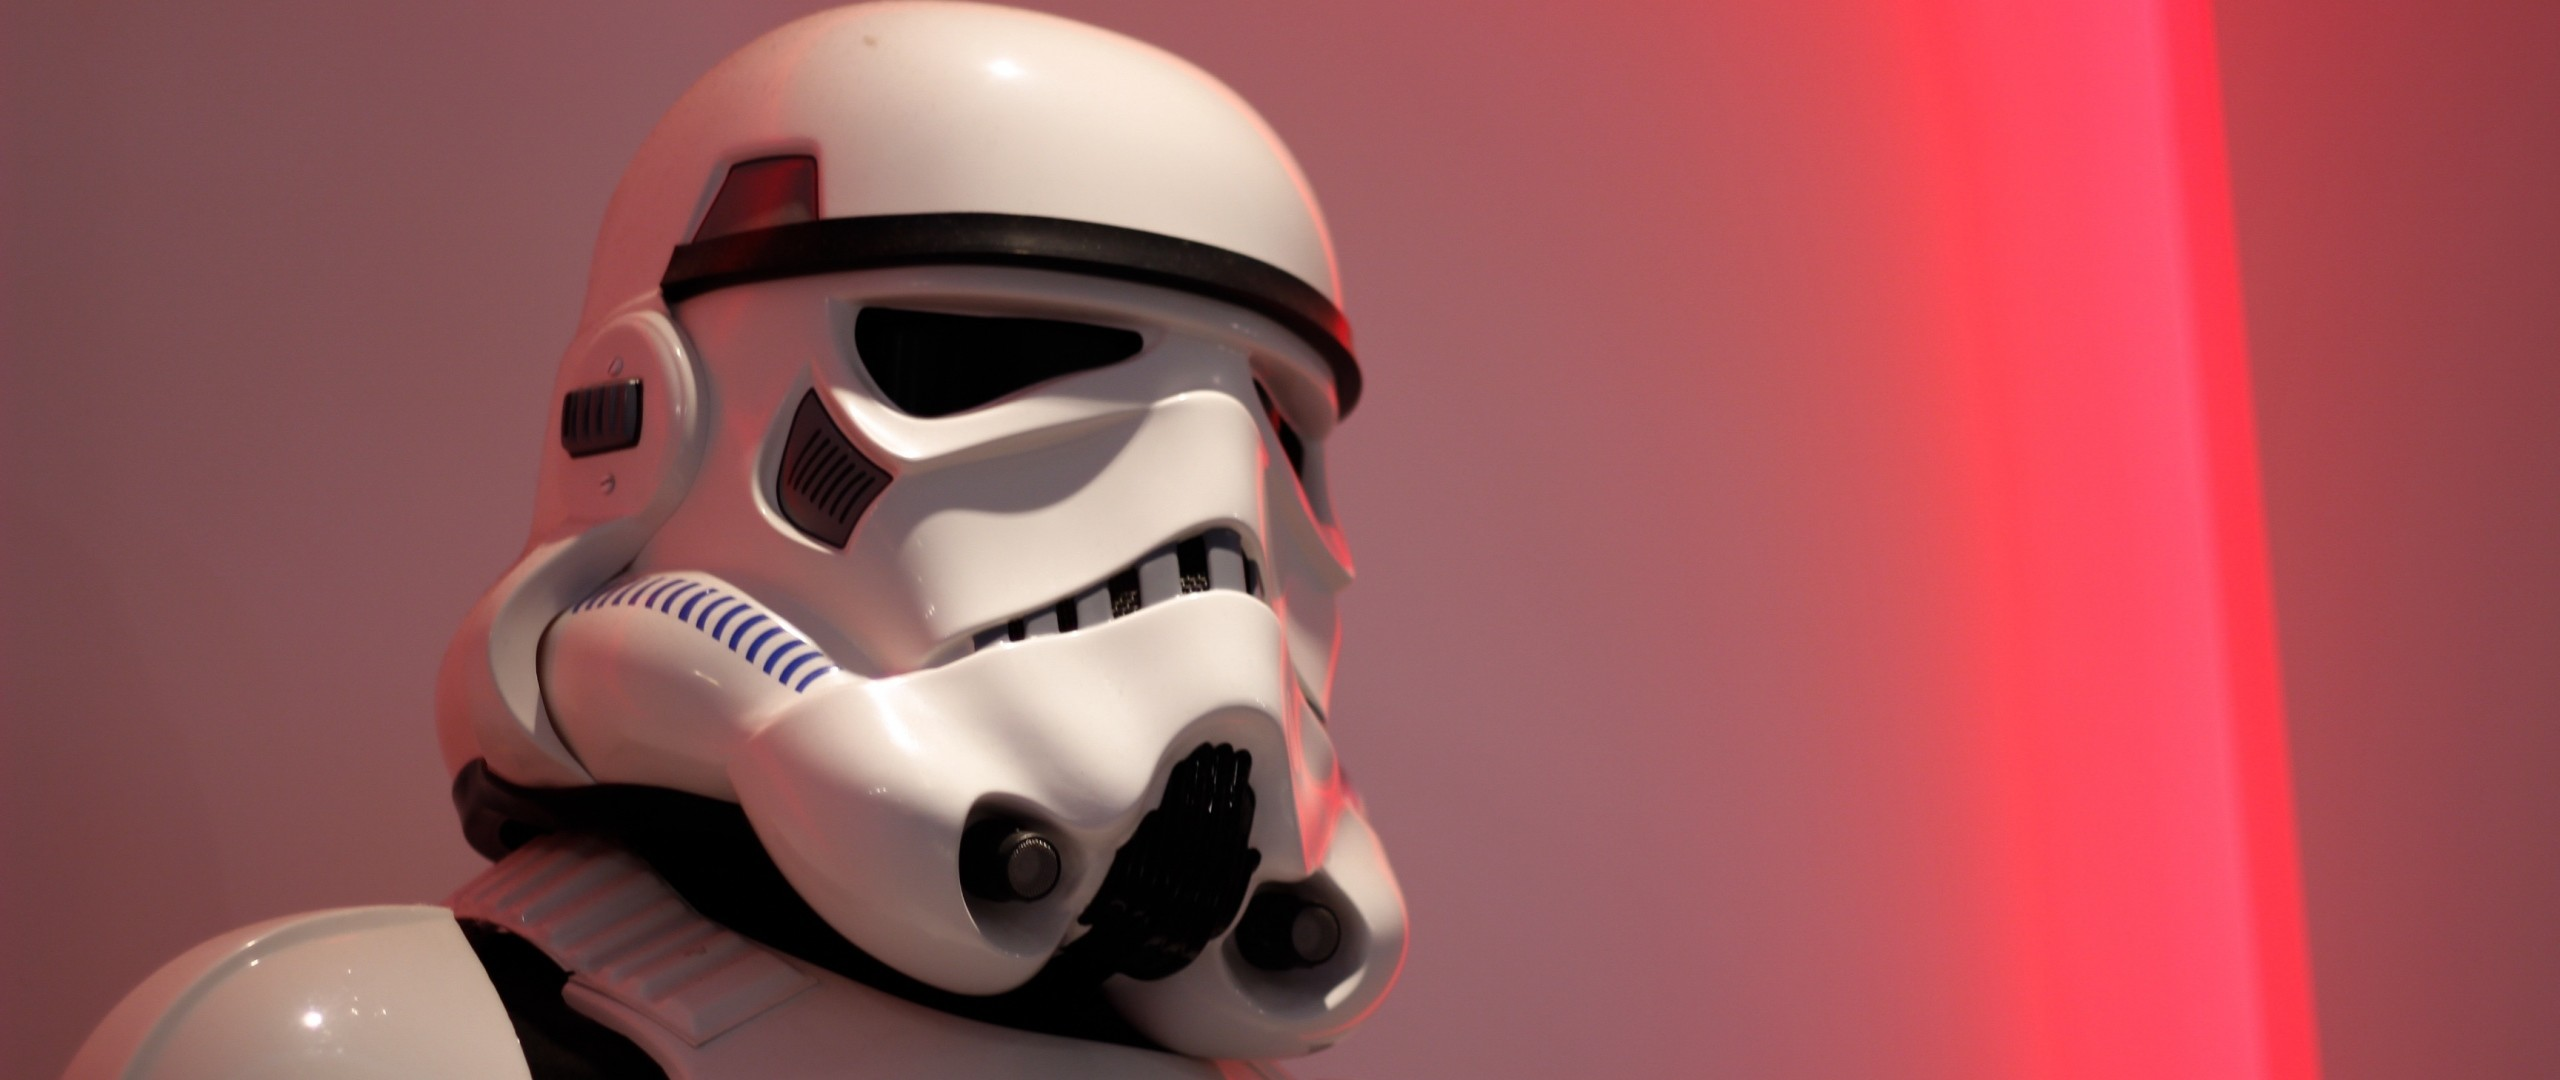 2560x1080  Wallpaper stormtroopers, star wars, lego